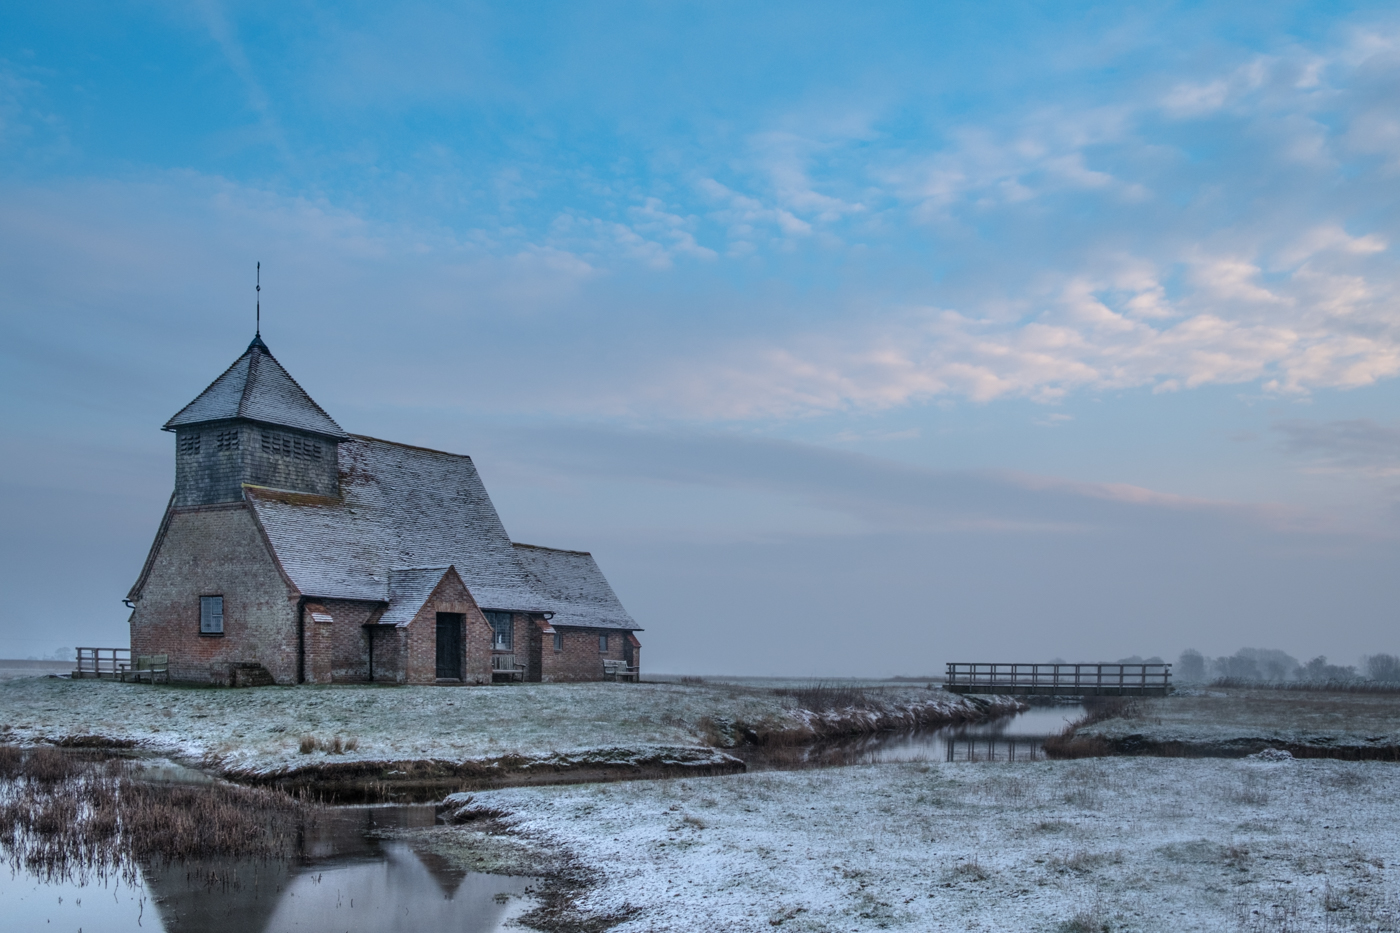 FAIRFIELD CHURCH ON A SNOWY DAY by Chris Reynolds